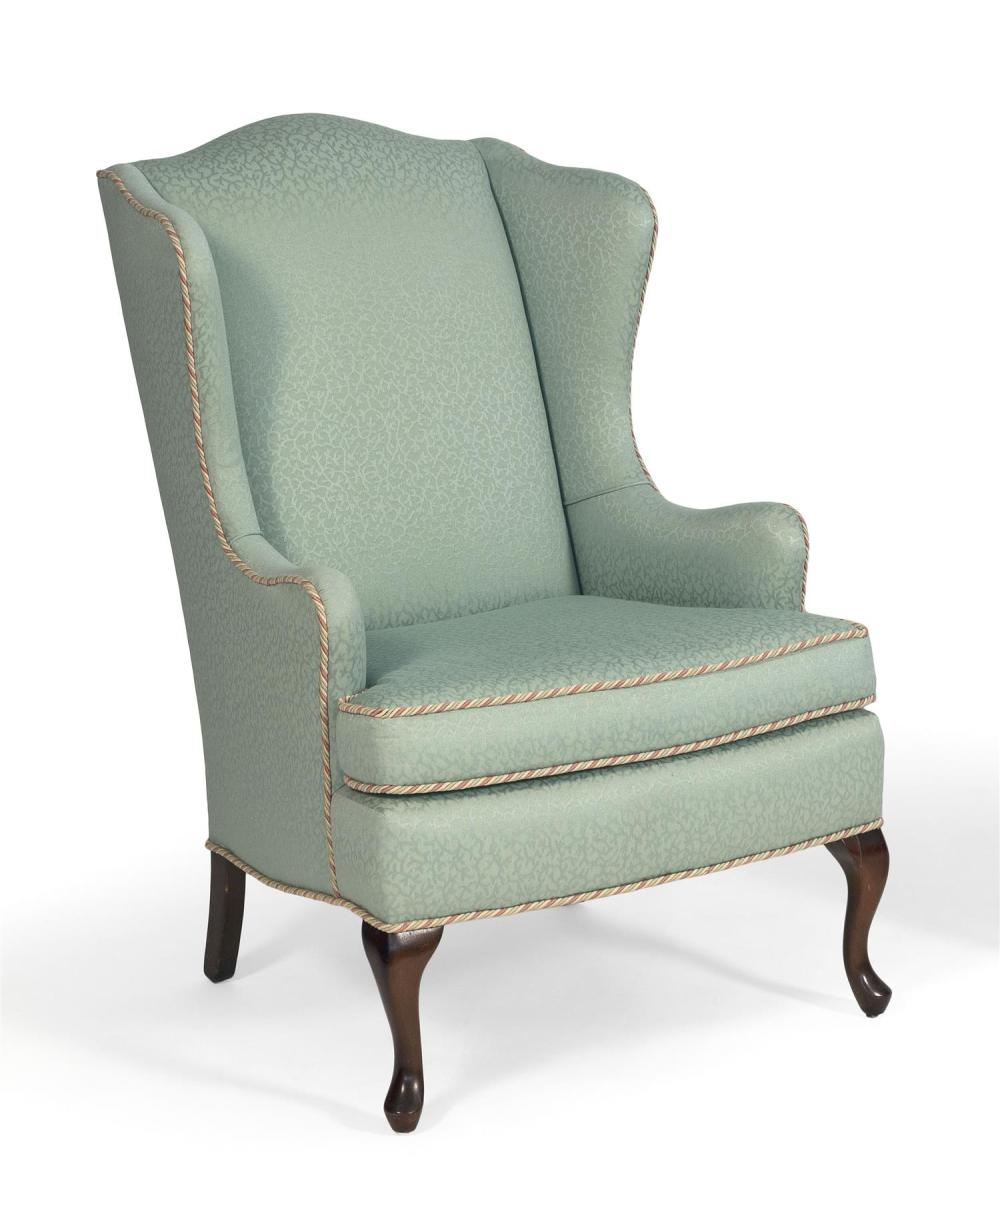 """QUEEN ANNE-STYLE WING CHAIR Mahogany legs. Green upholstery. Back height 41.5"""". Seat height 20""""."""